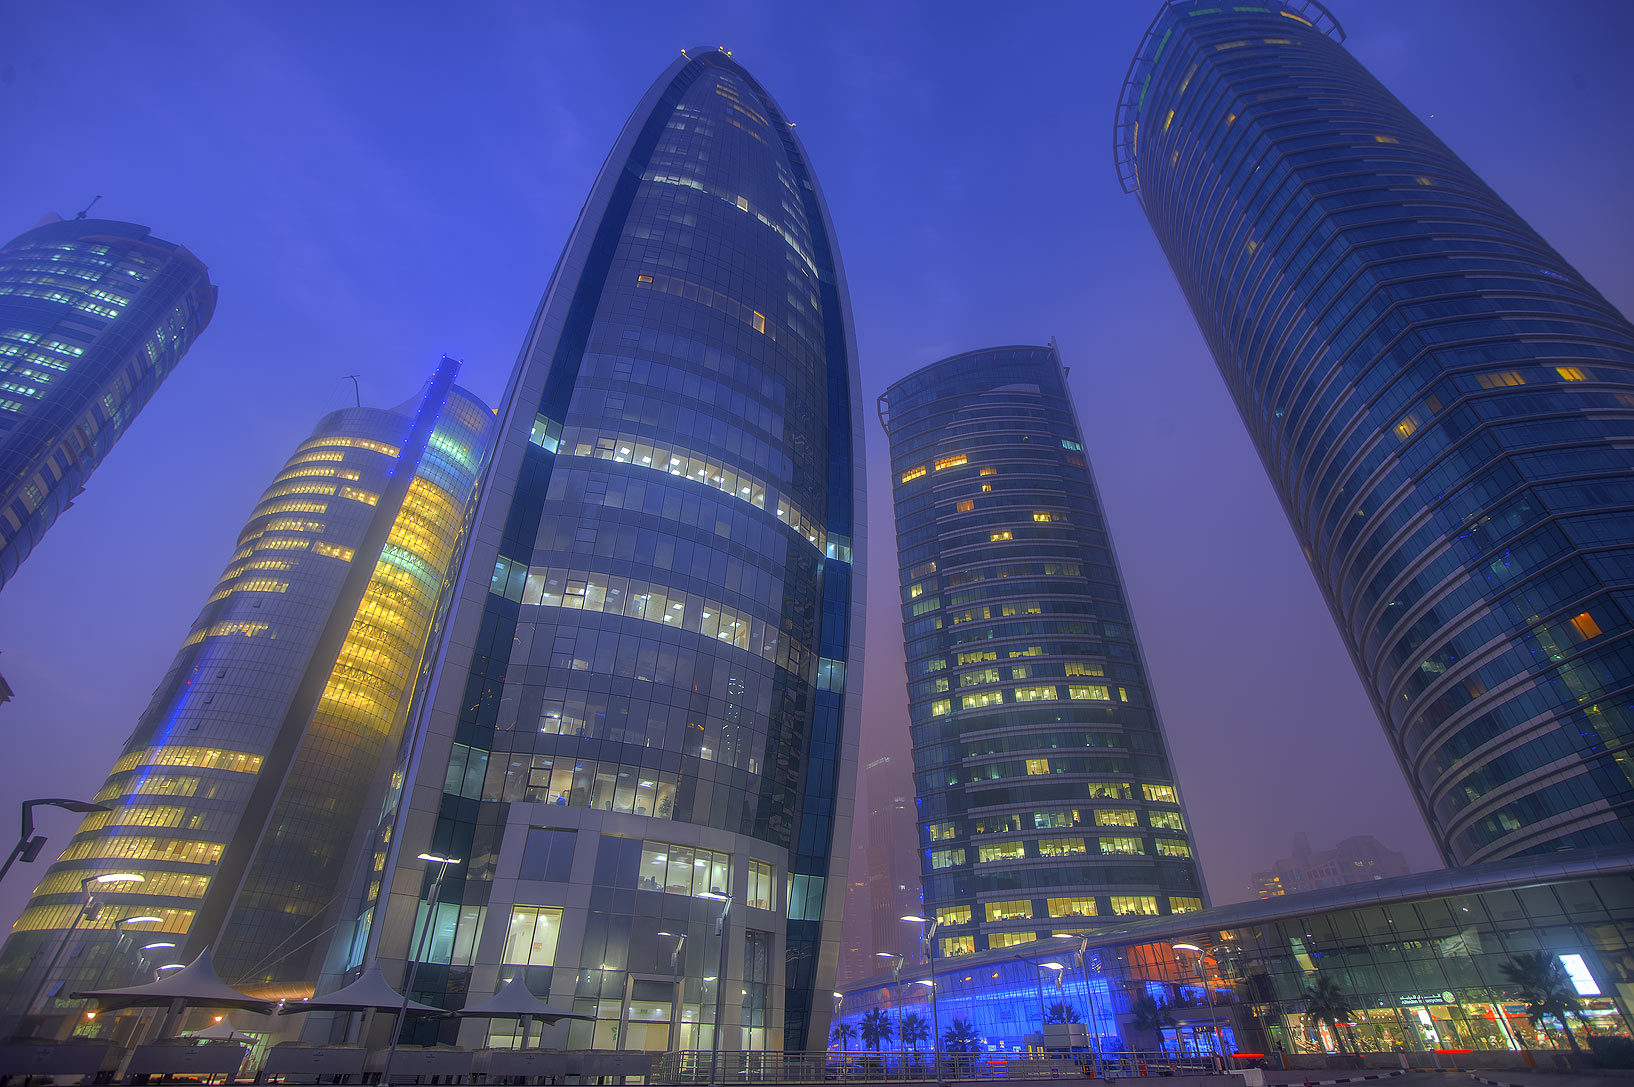 Woqod and Al Fardan towers in West Bay. Doha, Qatar